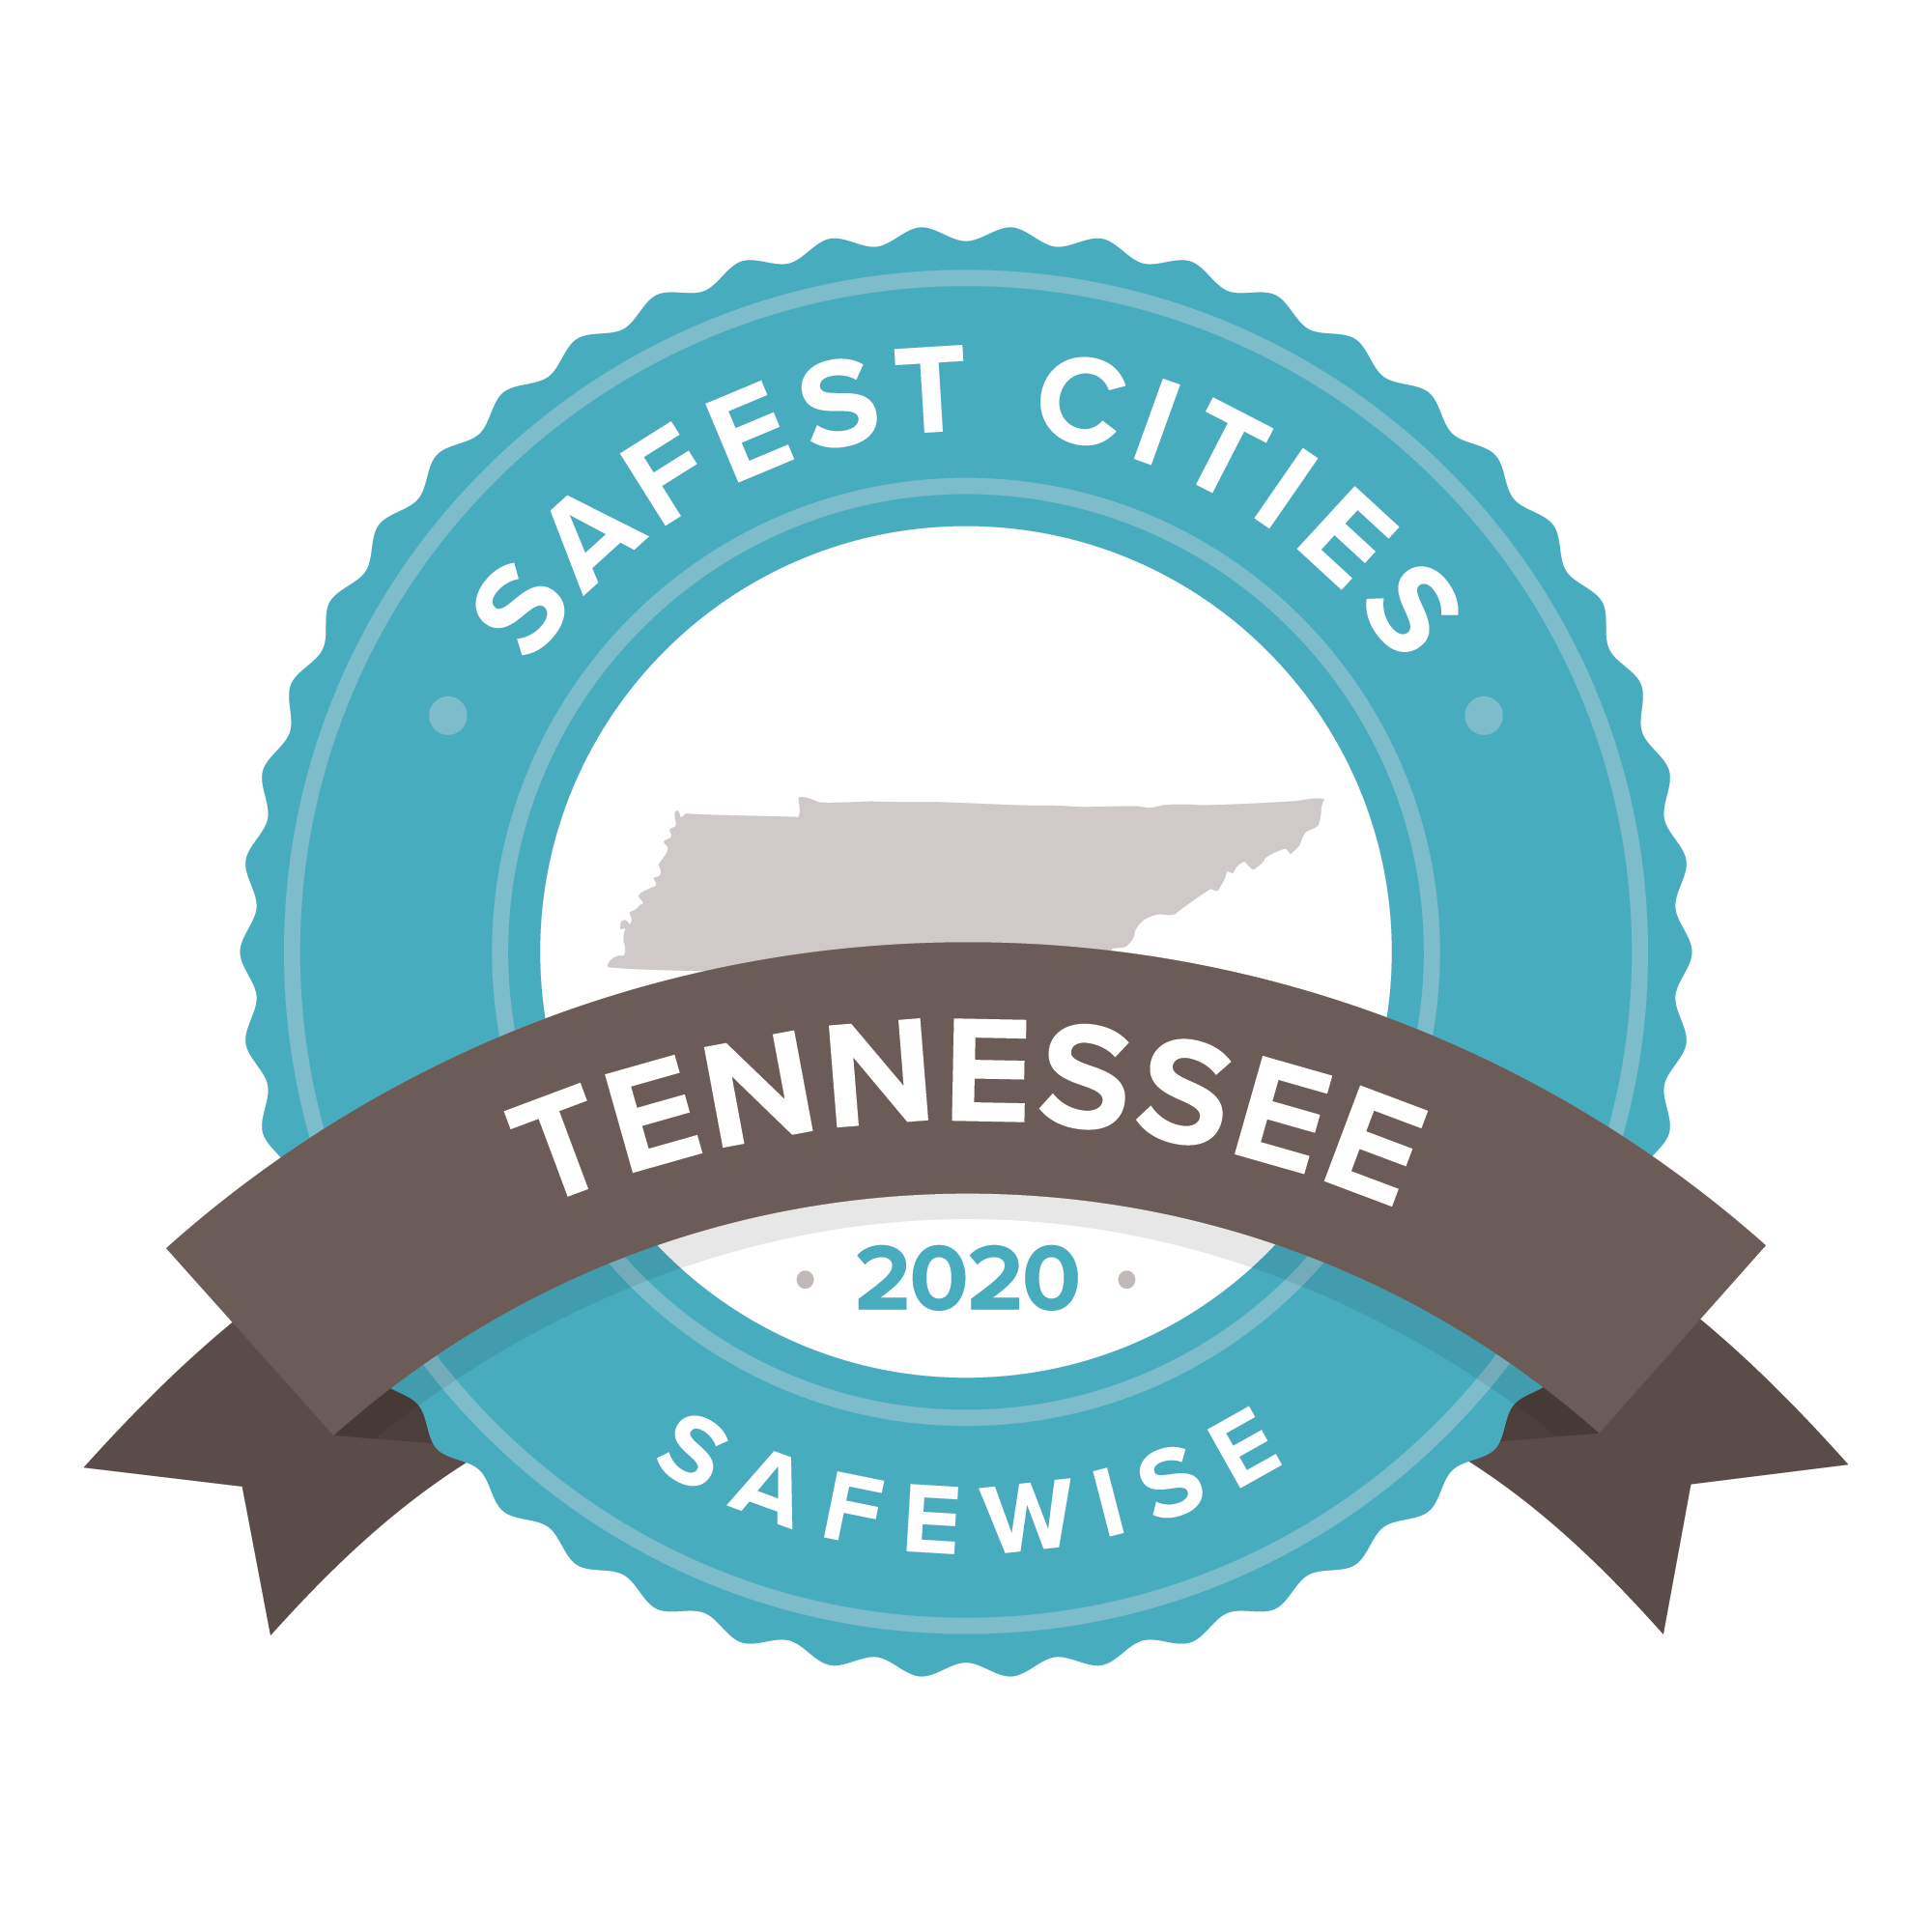 Tennesses safest cities badge